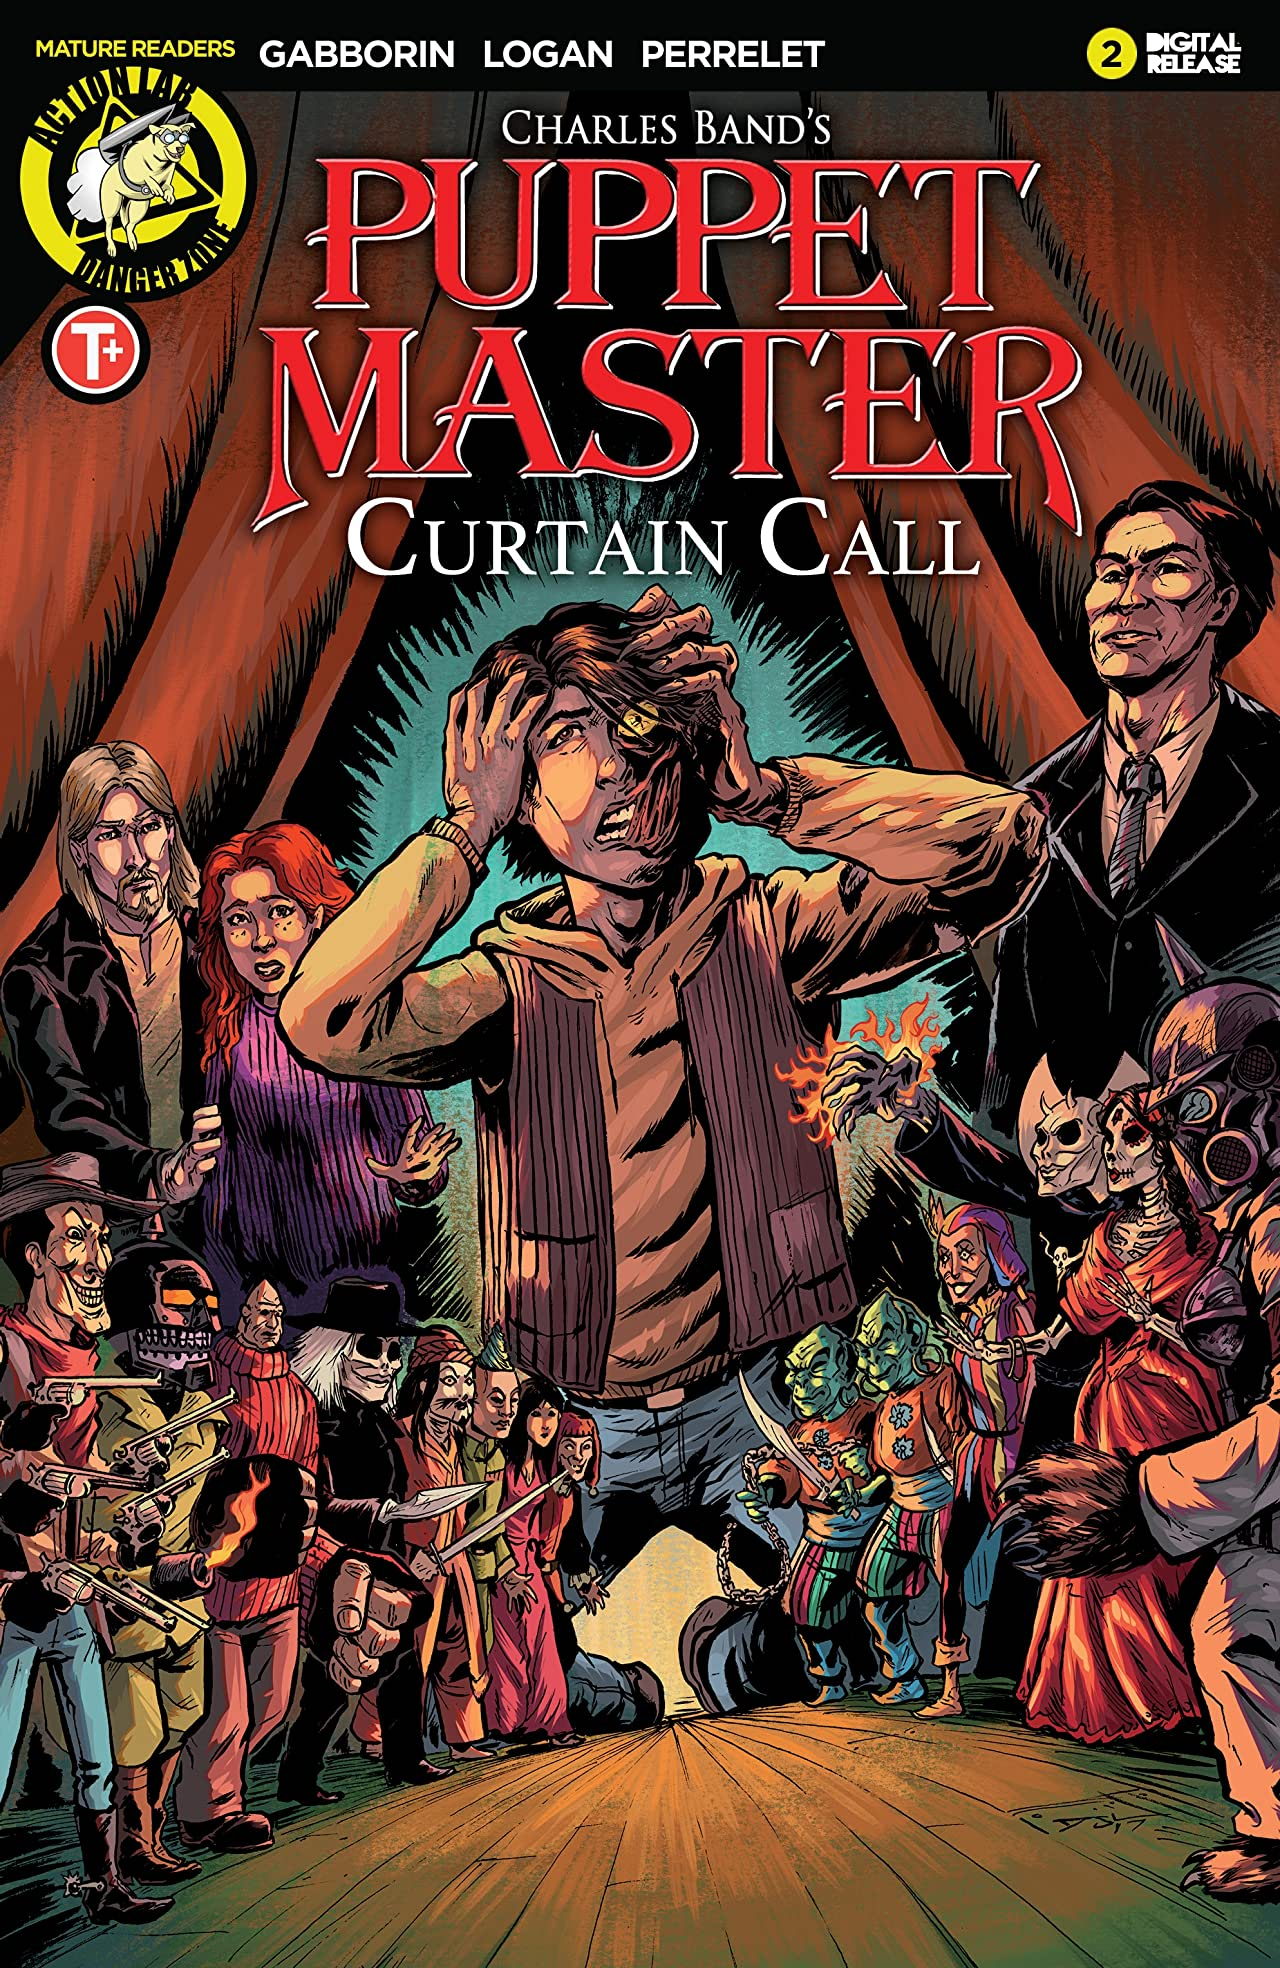 Puppet Master: Curtain Call #2